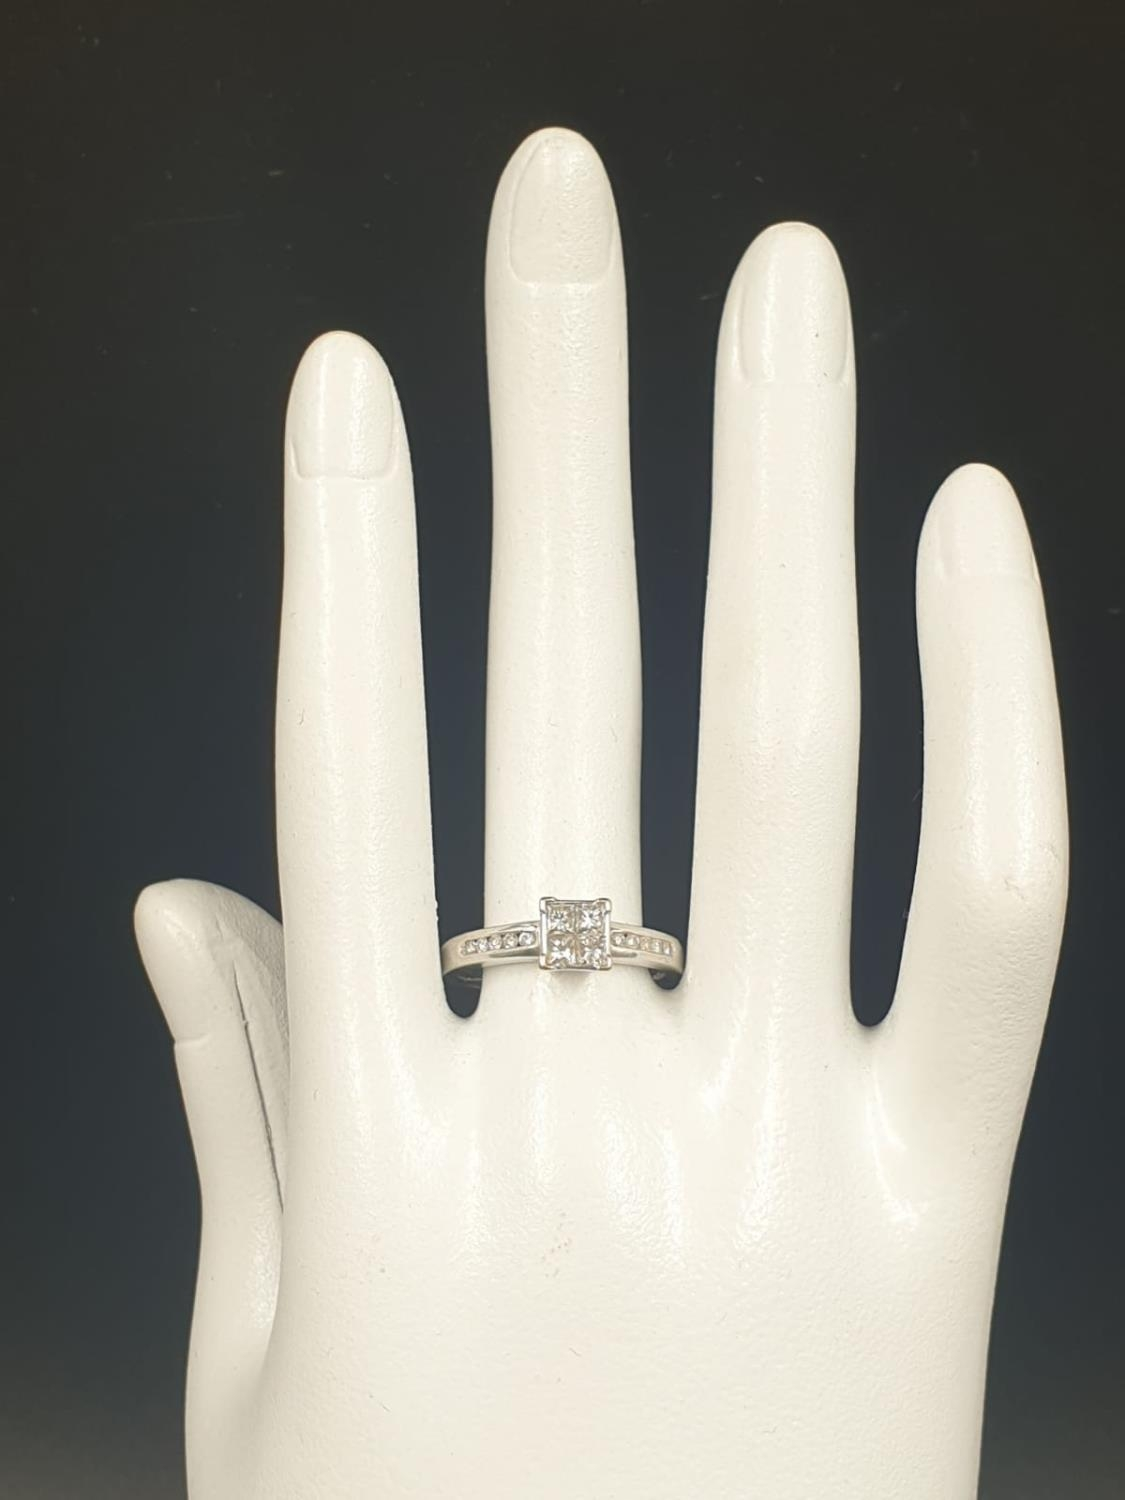 18K WHITE GOLD DIAMOND CLUSTER RING APPROX 0.45CT DIAMONDS WEIGHT 4.5G SIZE Q - Image 6 of 6